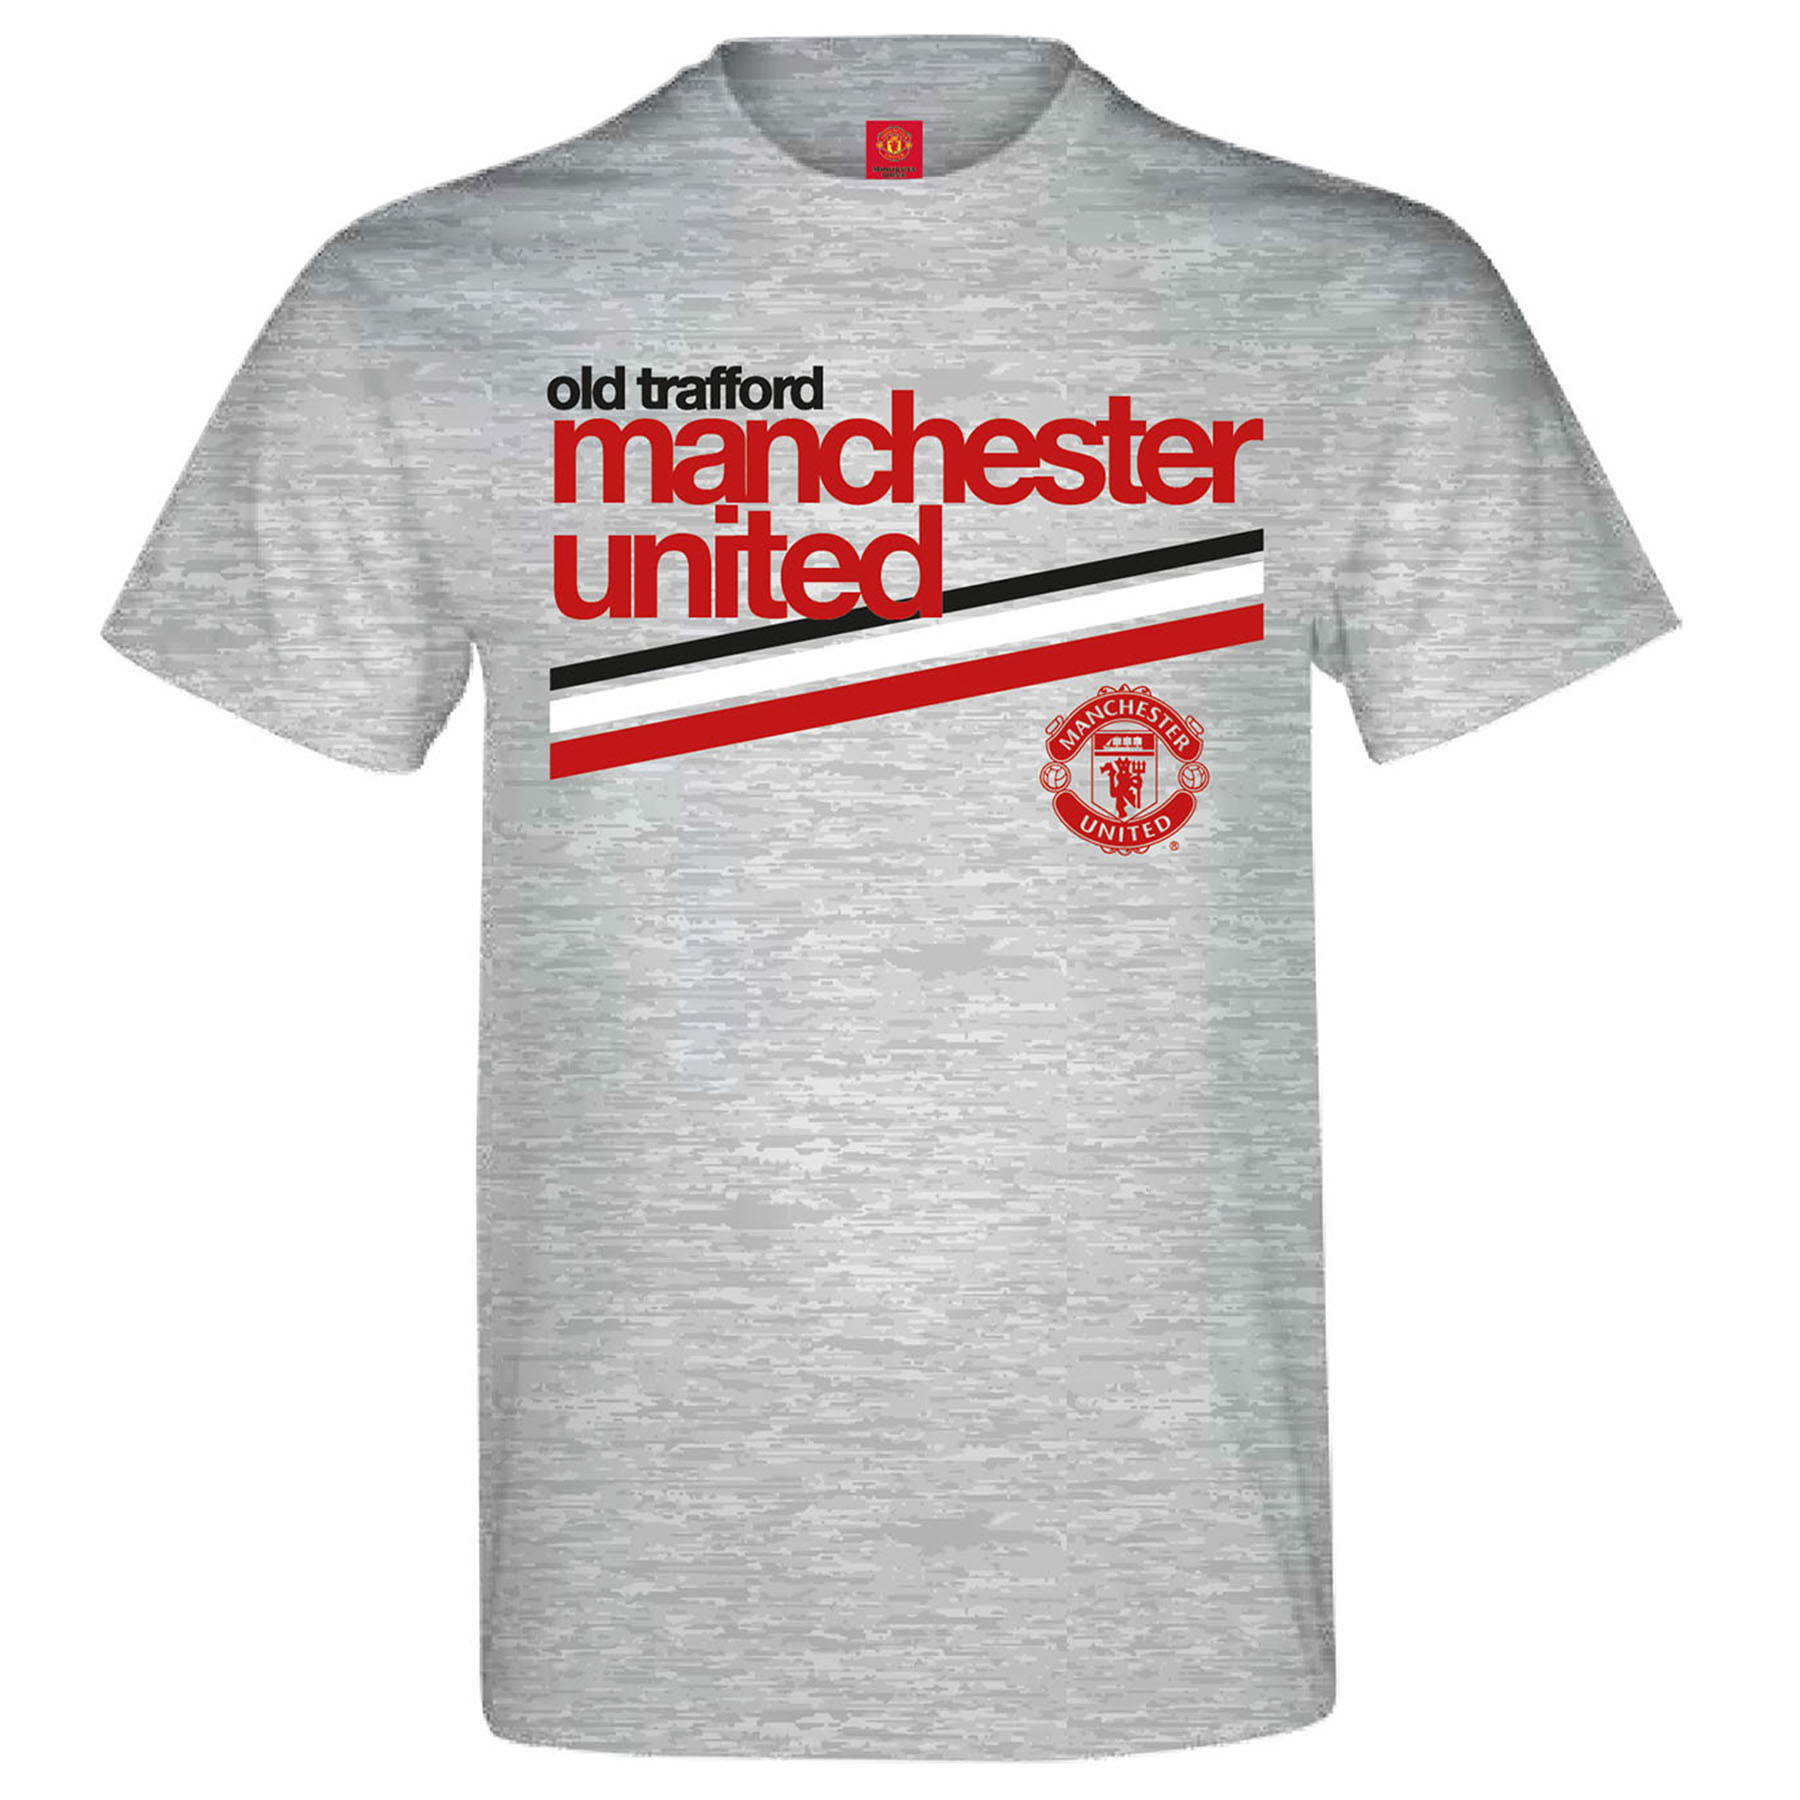 Manchester United Retro T-Shirt - Sports Grey - Boys